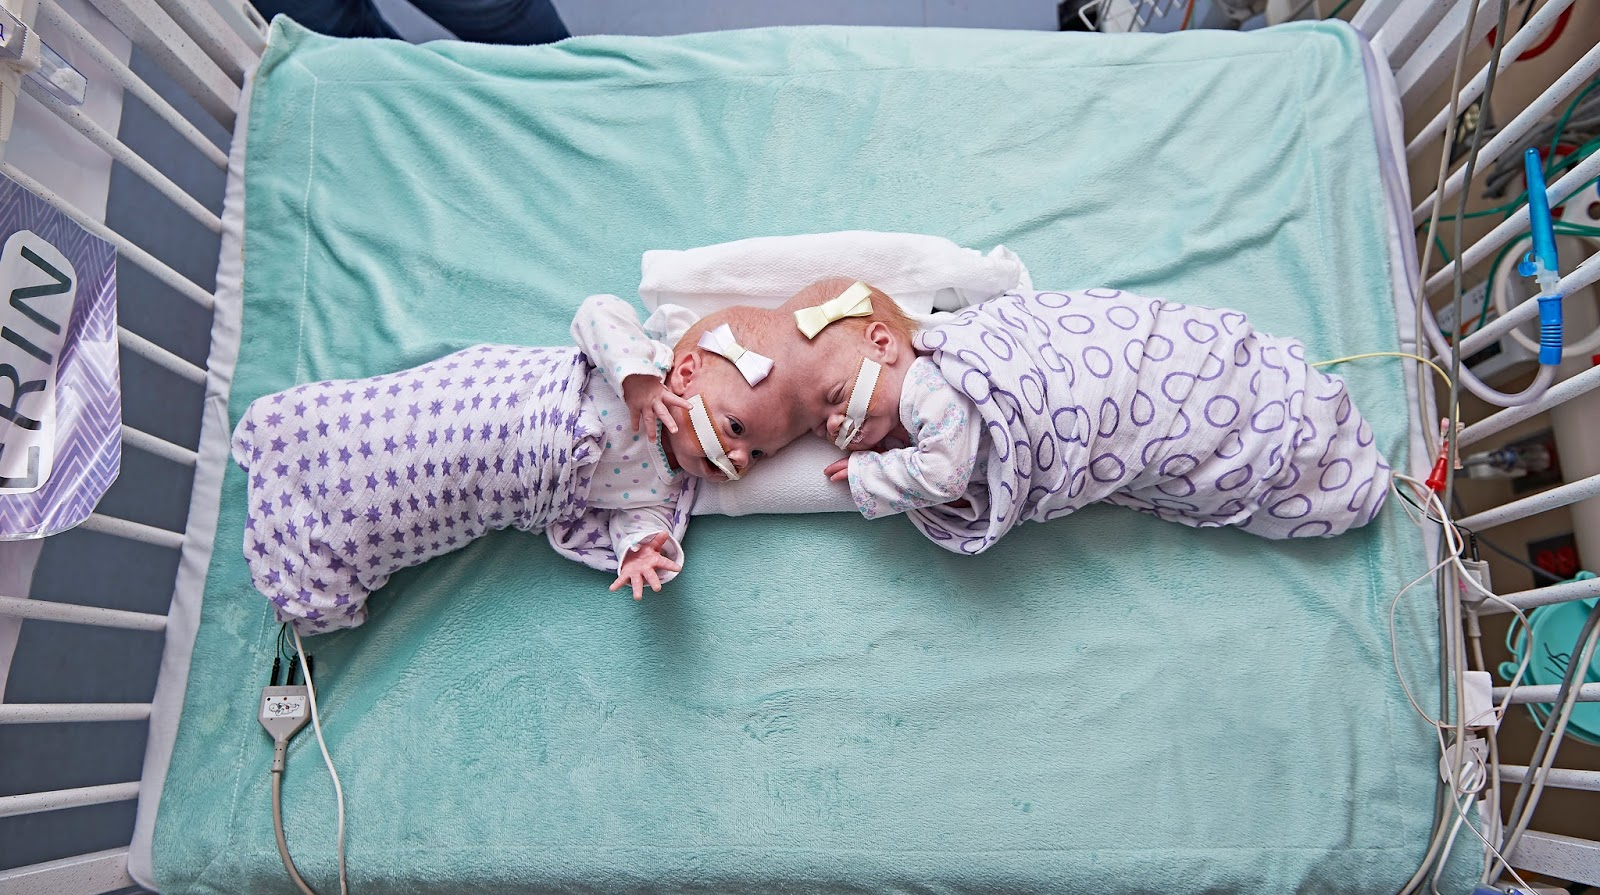 Formerly conjoined twins thriving after separation surgery